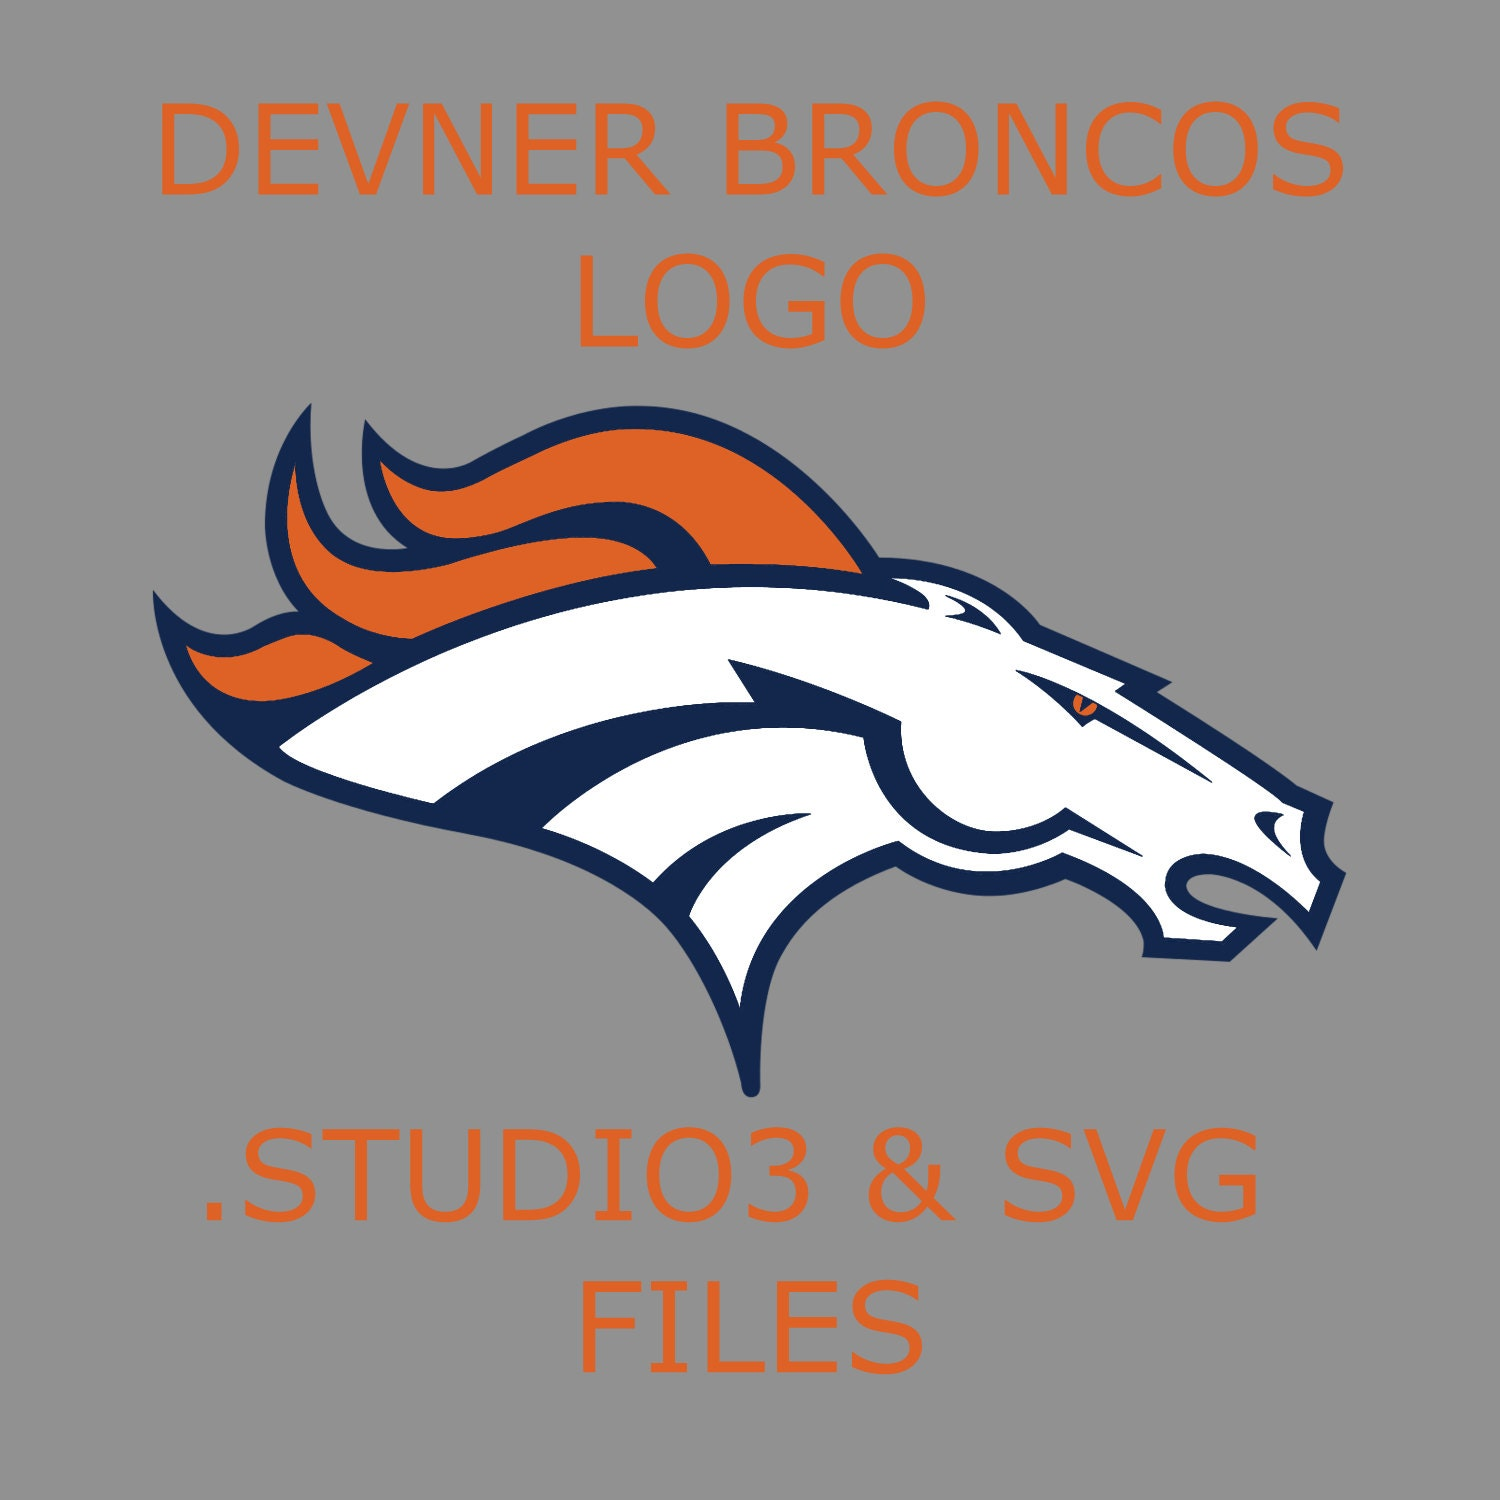 Unique denver broncos decal related items | Etsy